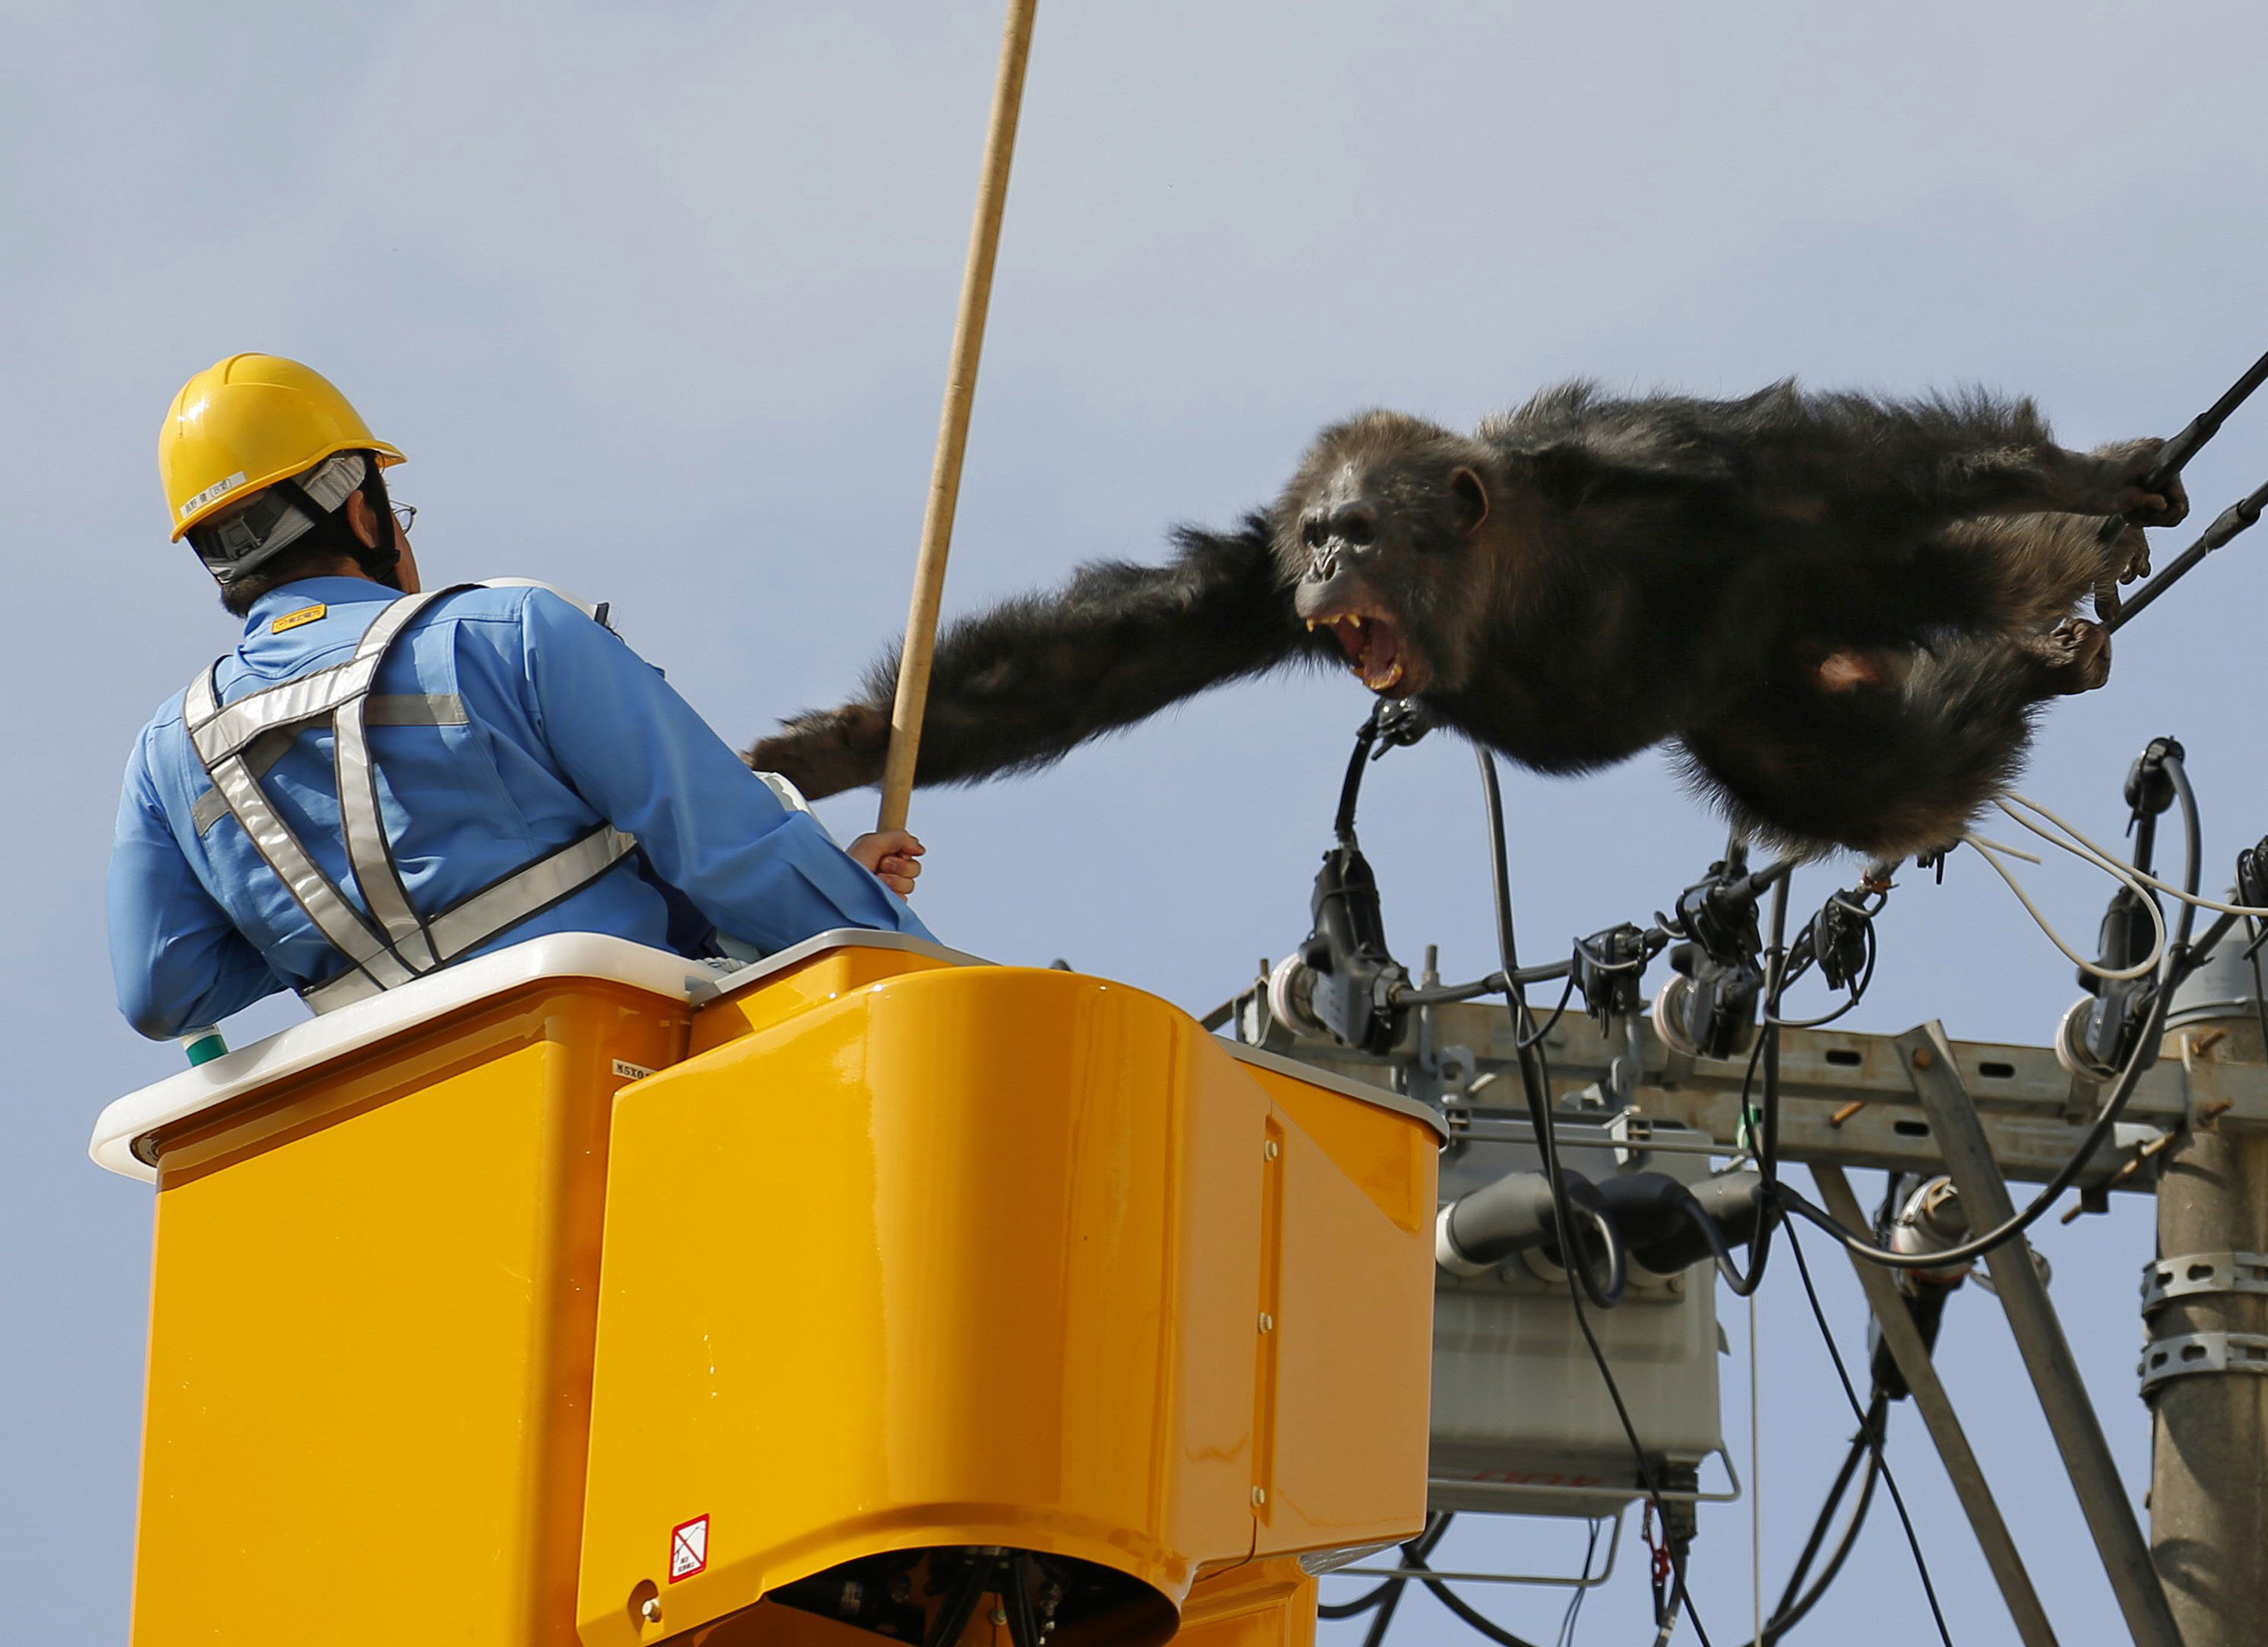 Male chimpanzee Chacha screams at a man trying to capture him on power lines in a residential area of Sendai, Japan, on April 14, 2016.